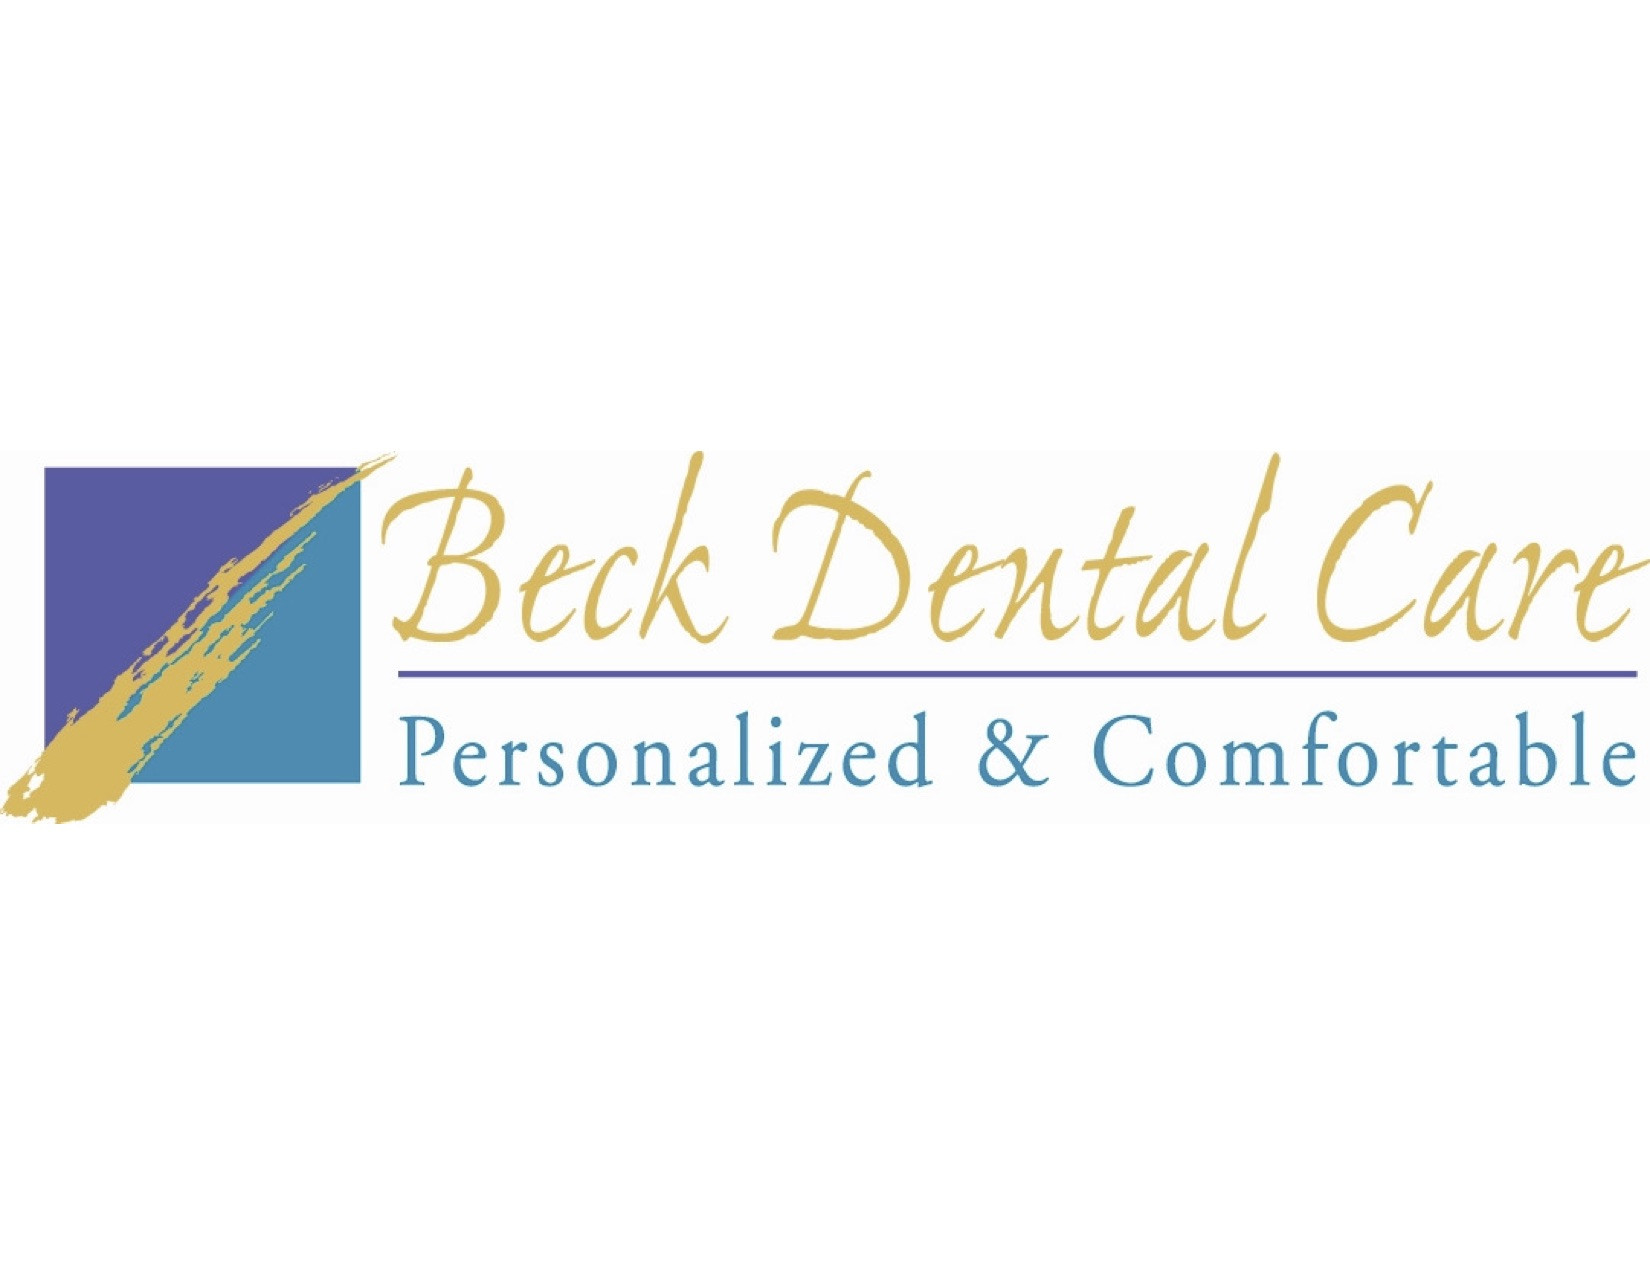 Beck Dental